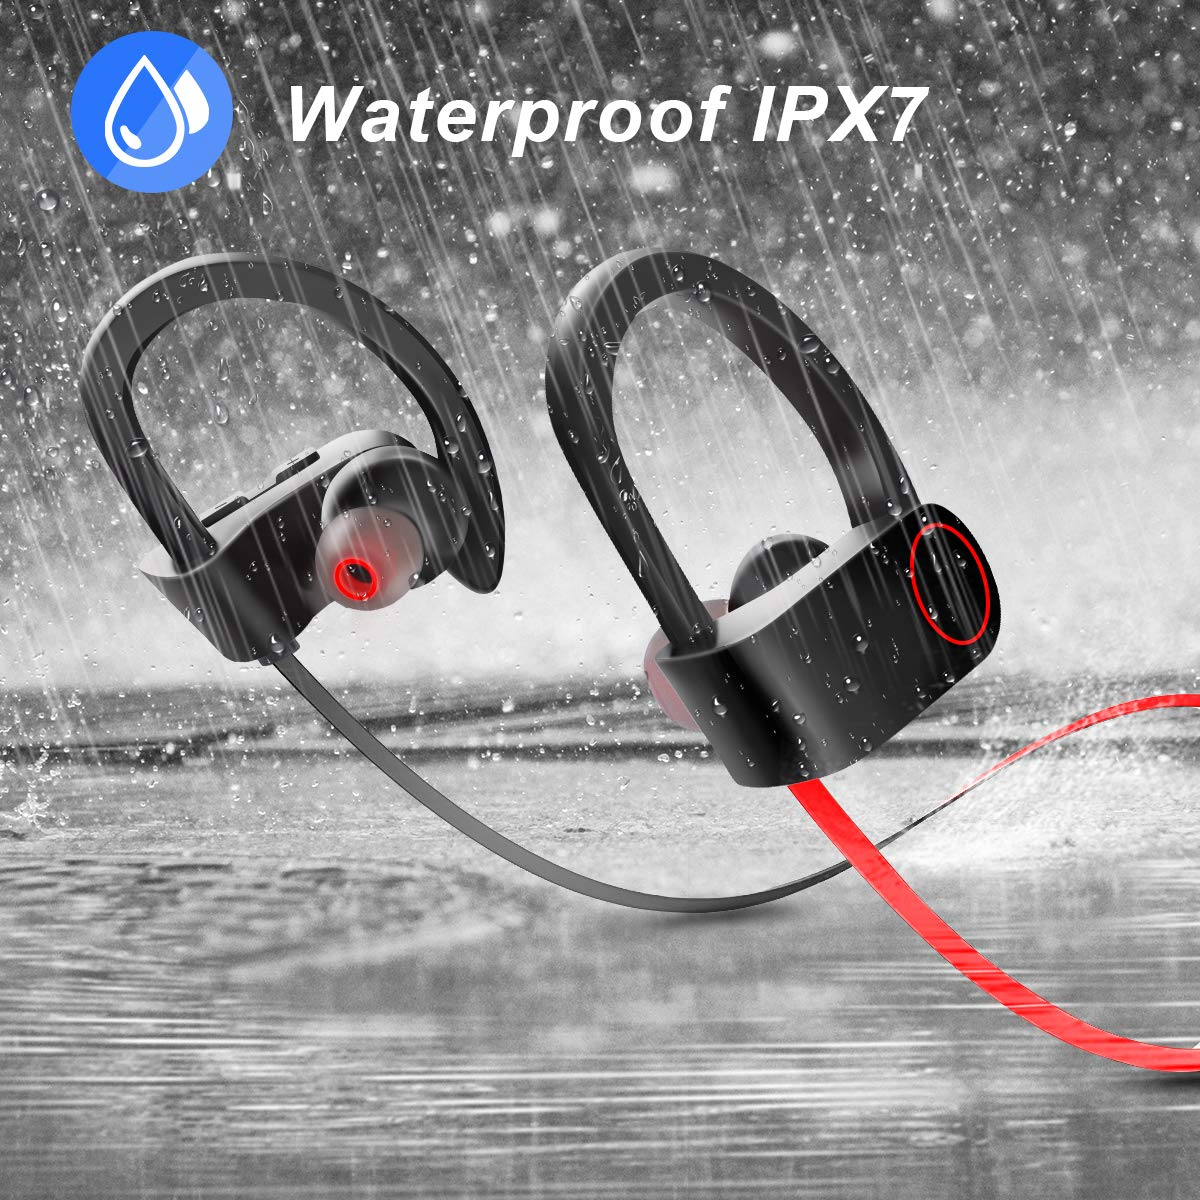 Bluetooth Headphones IPX7 Waterproof Wireless Sport Earphones HD Stereo Sound Sweatproof in-Ear Earbuds with Mic Noise Cancelling Headsets for Gym Running Workout 8 Hrs Play Time Black